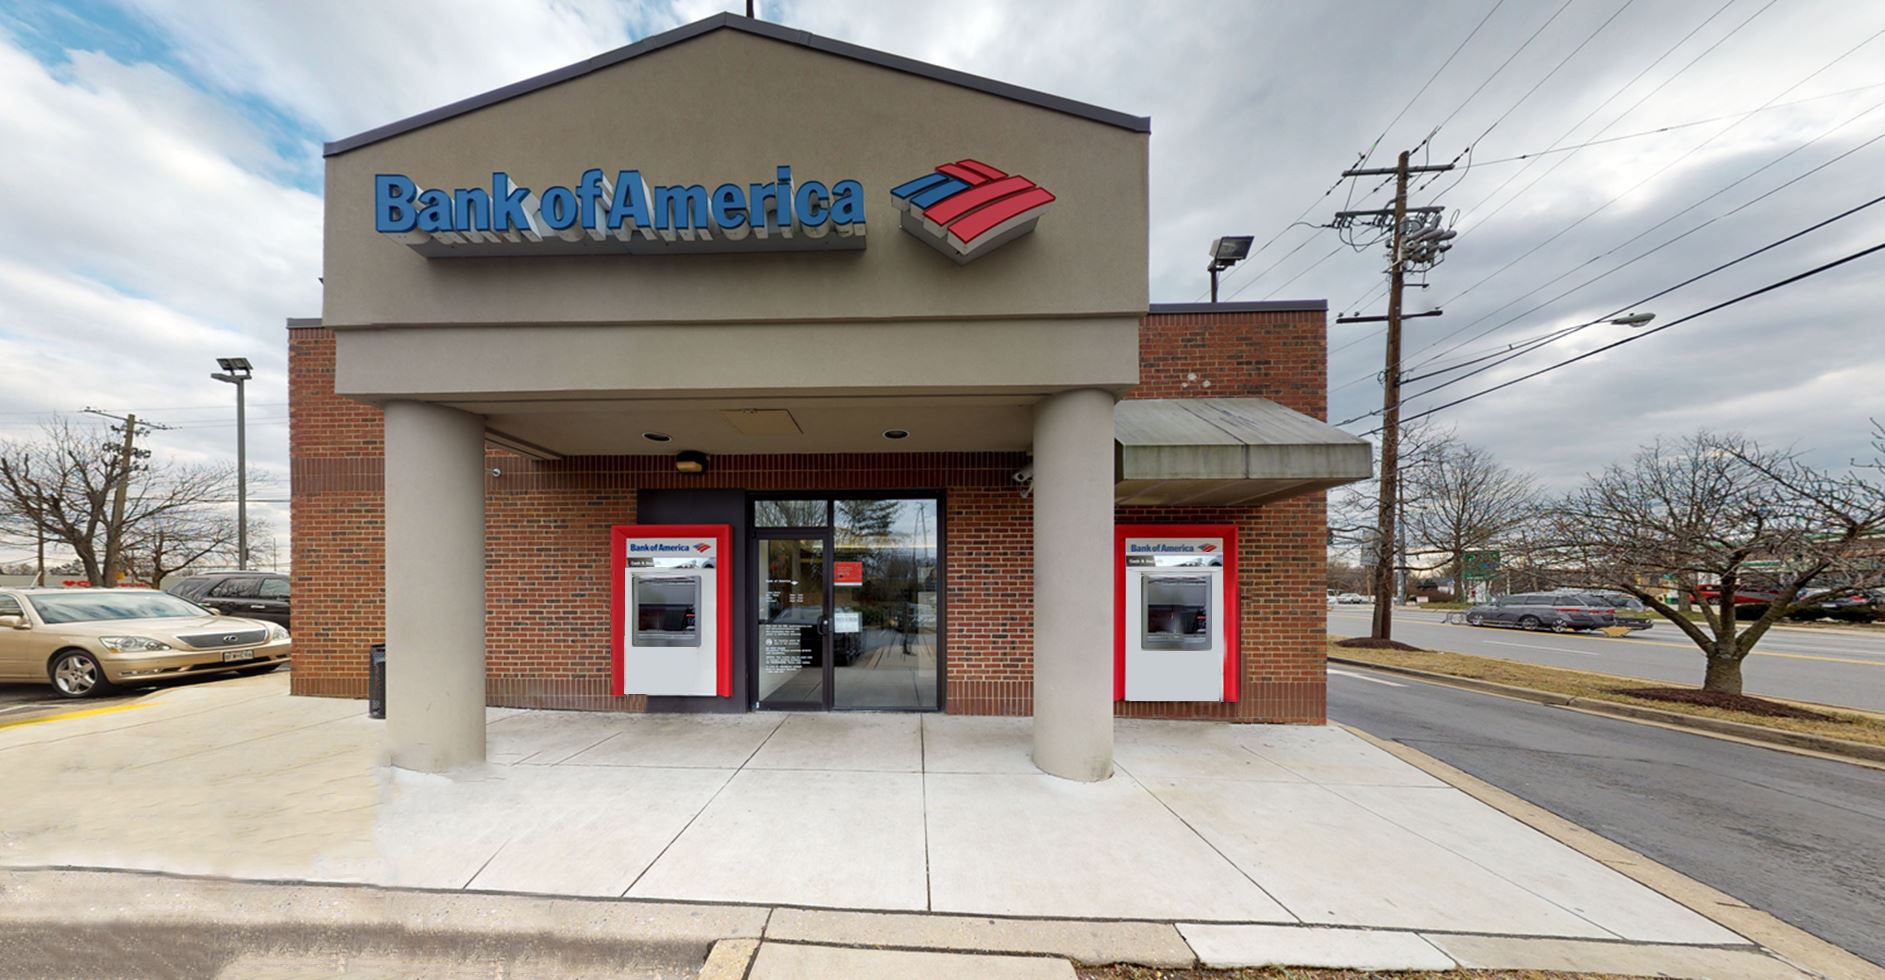 Bank of America financial center with walk-up ATM | 6966 Temple Hill Rd, Temple Hills, MD 20748